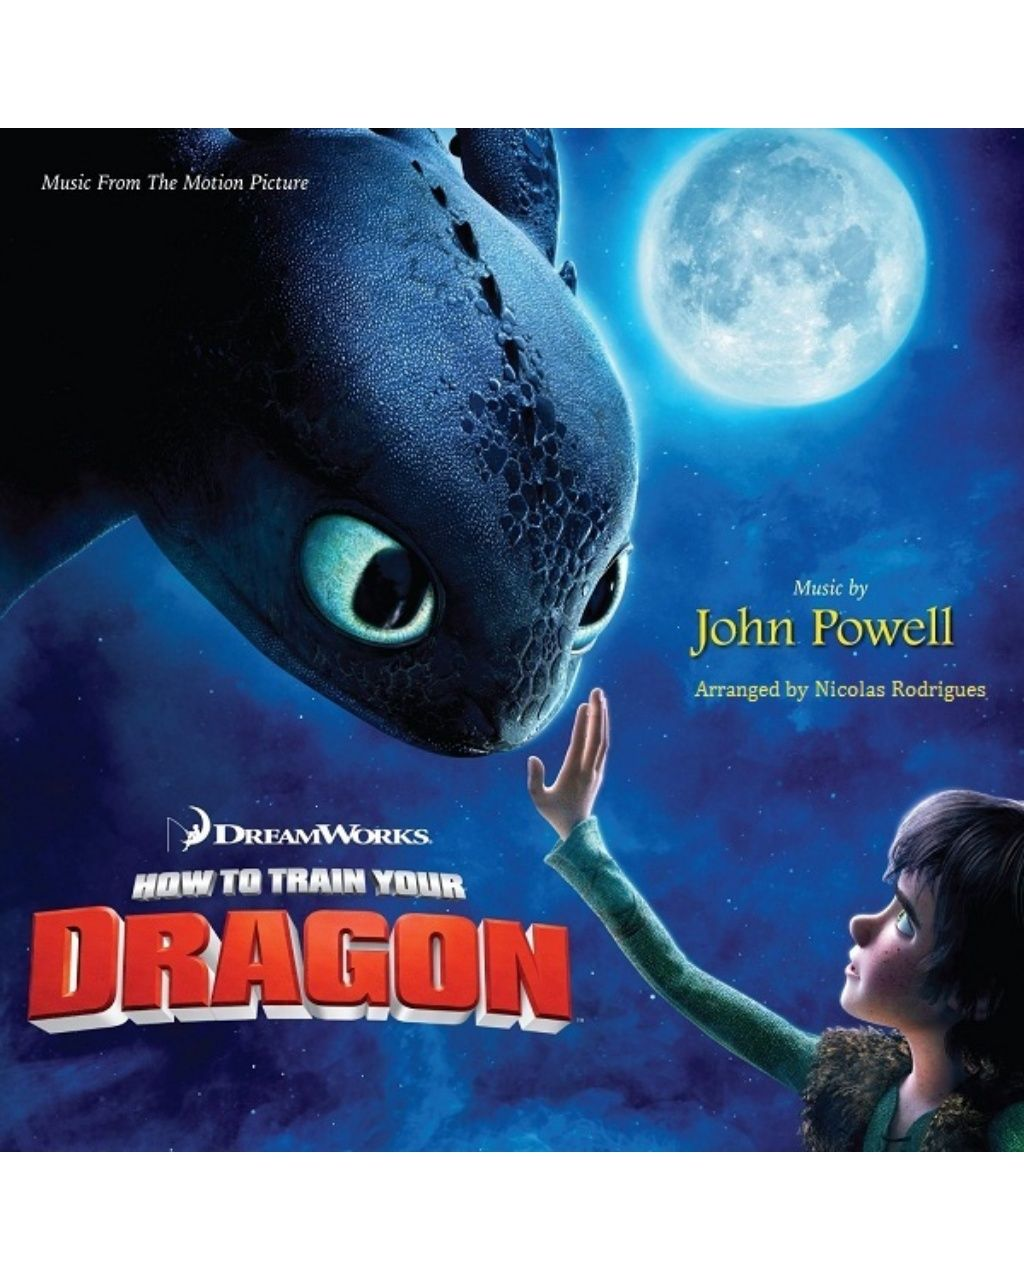 How to train your dragon sheet music book by nicolas rodrigues via how to train your dragon sheet music book by nicolas rodrigues via slideshare ccuart Gallery